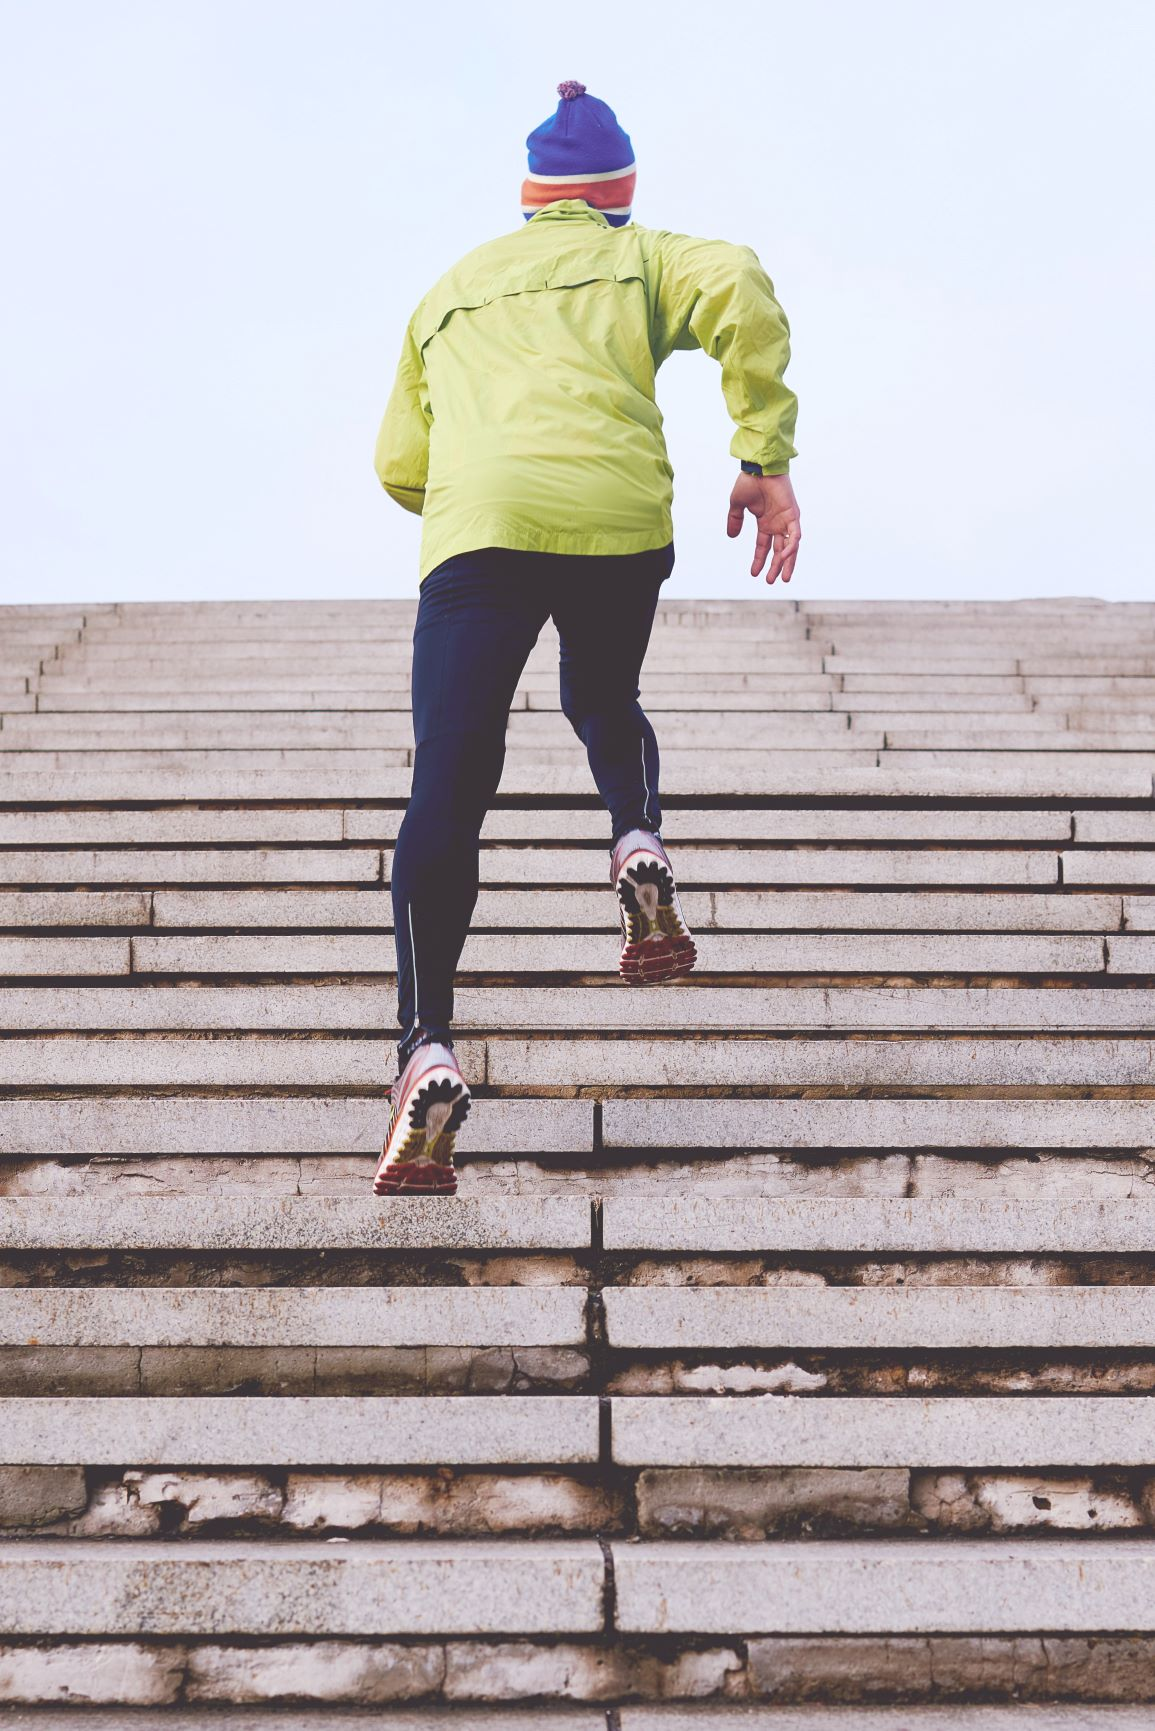 How to become a fitter athlete